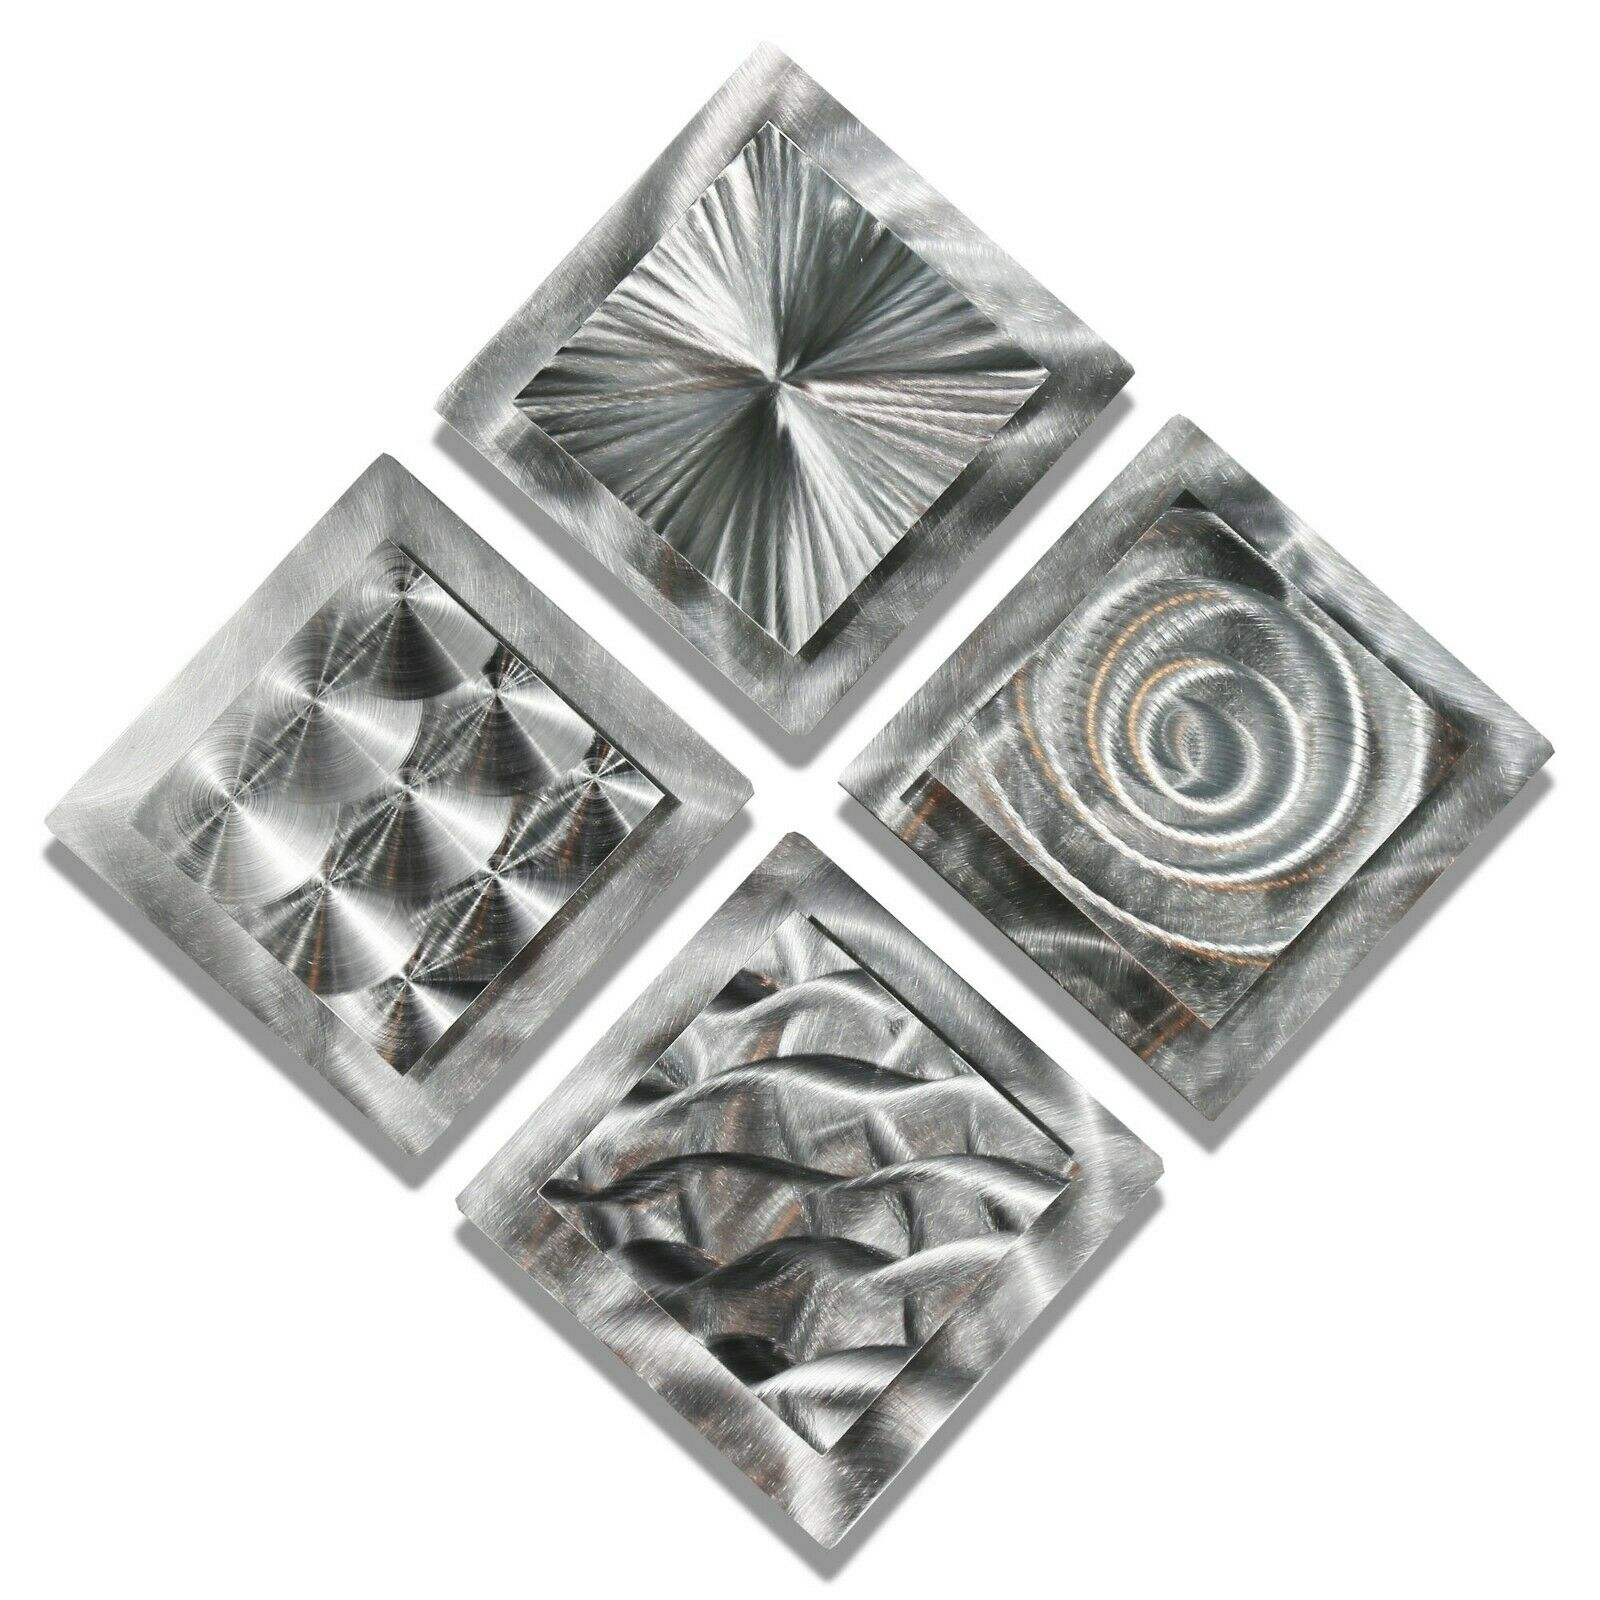 Modern Abstract Silver Metal Wall Art Original Home Decor Sculptures Jon Allen 1 Of 12only 3 Available